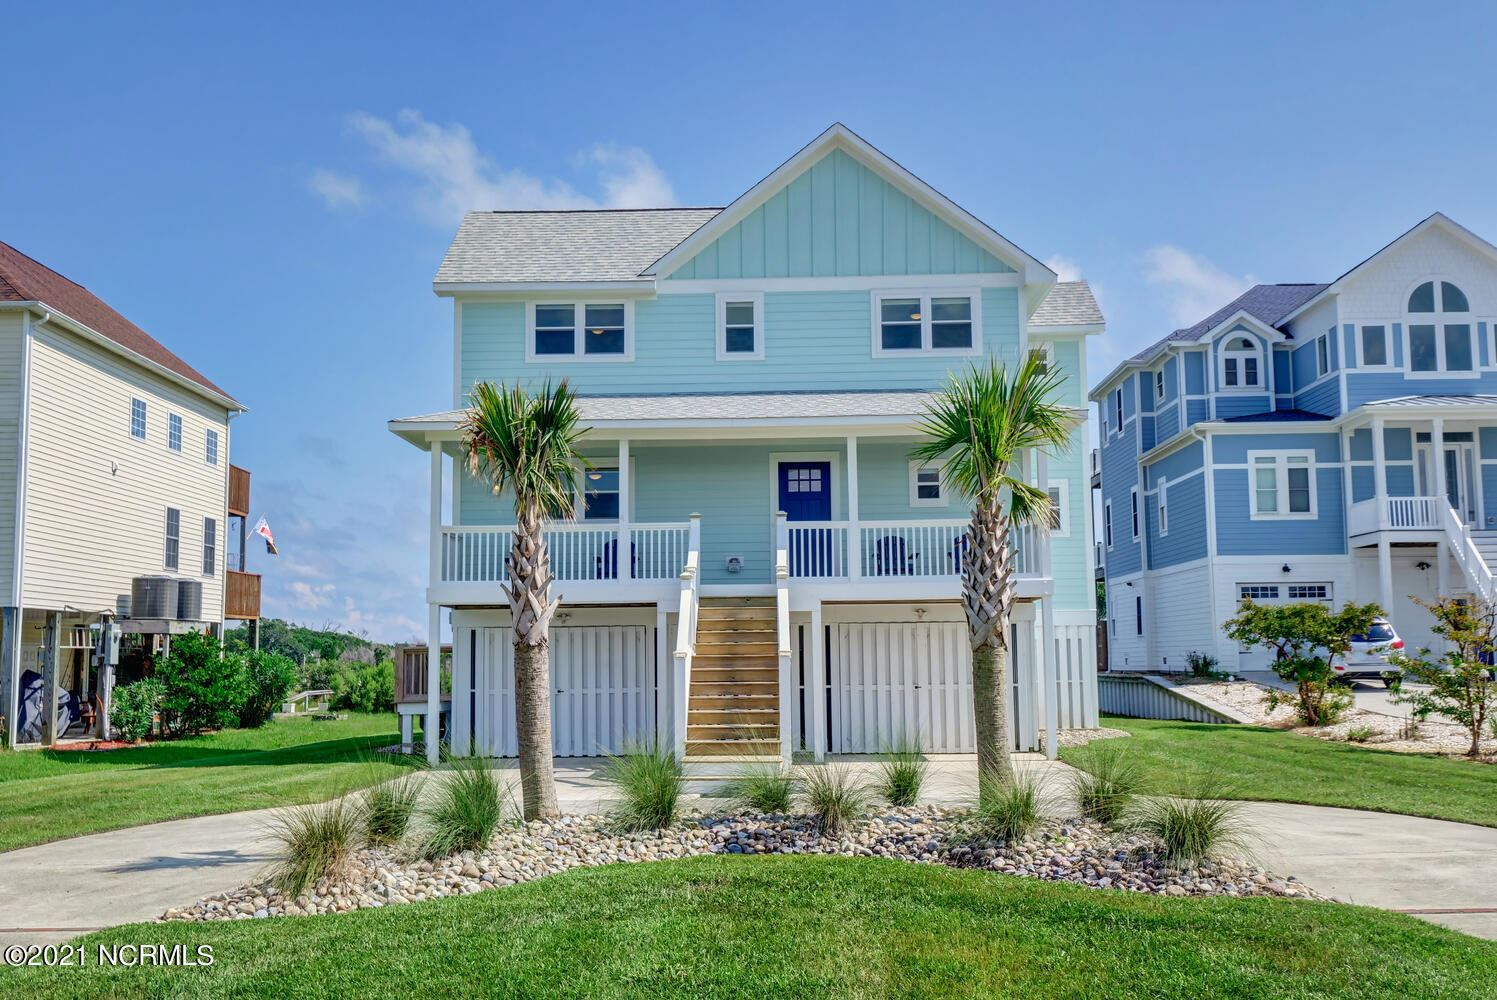 Photo of 243 Waterway Drive, Sneads Ferry, NC 28460 (MLS # 100285796)